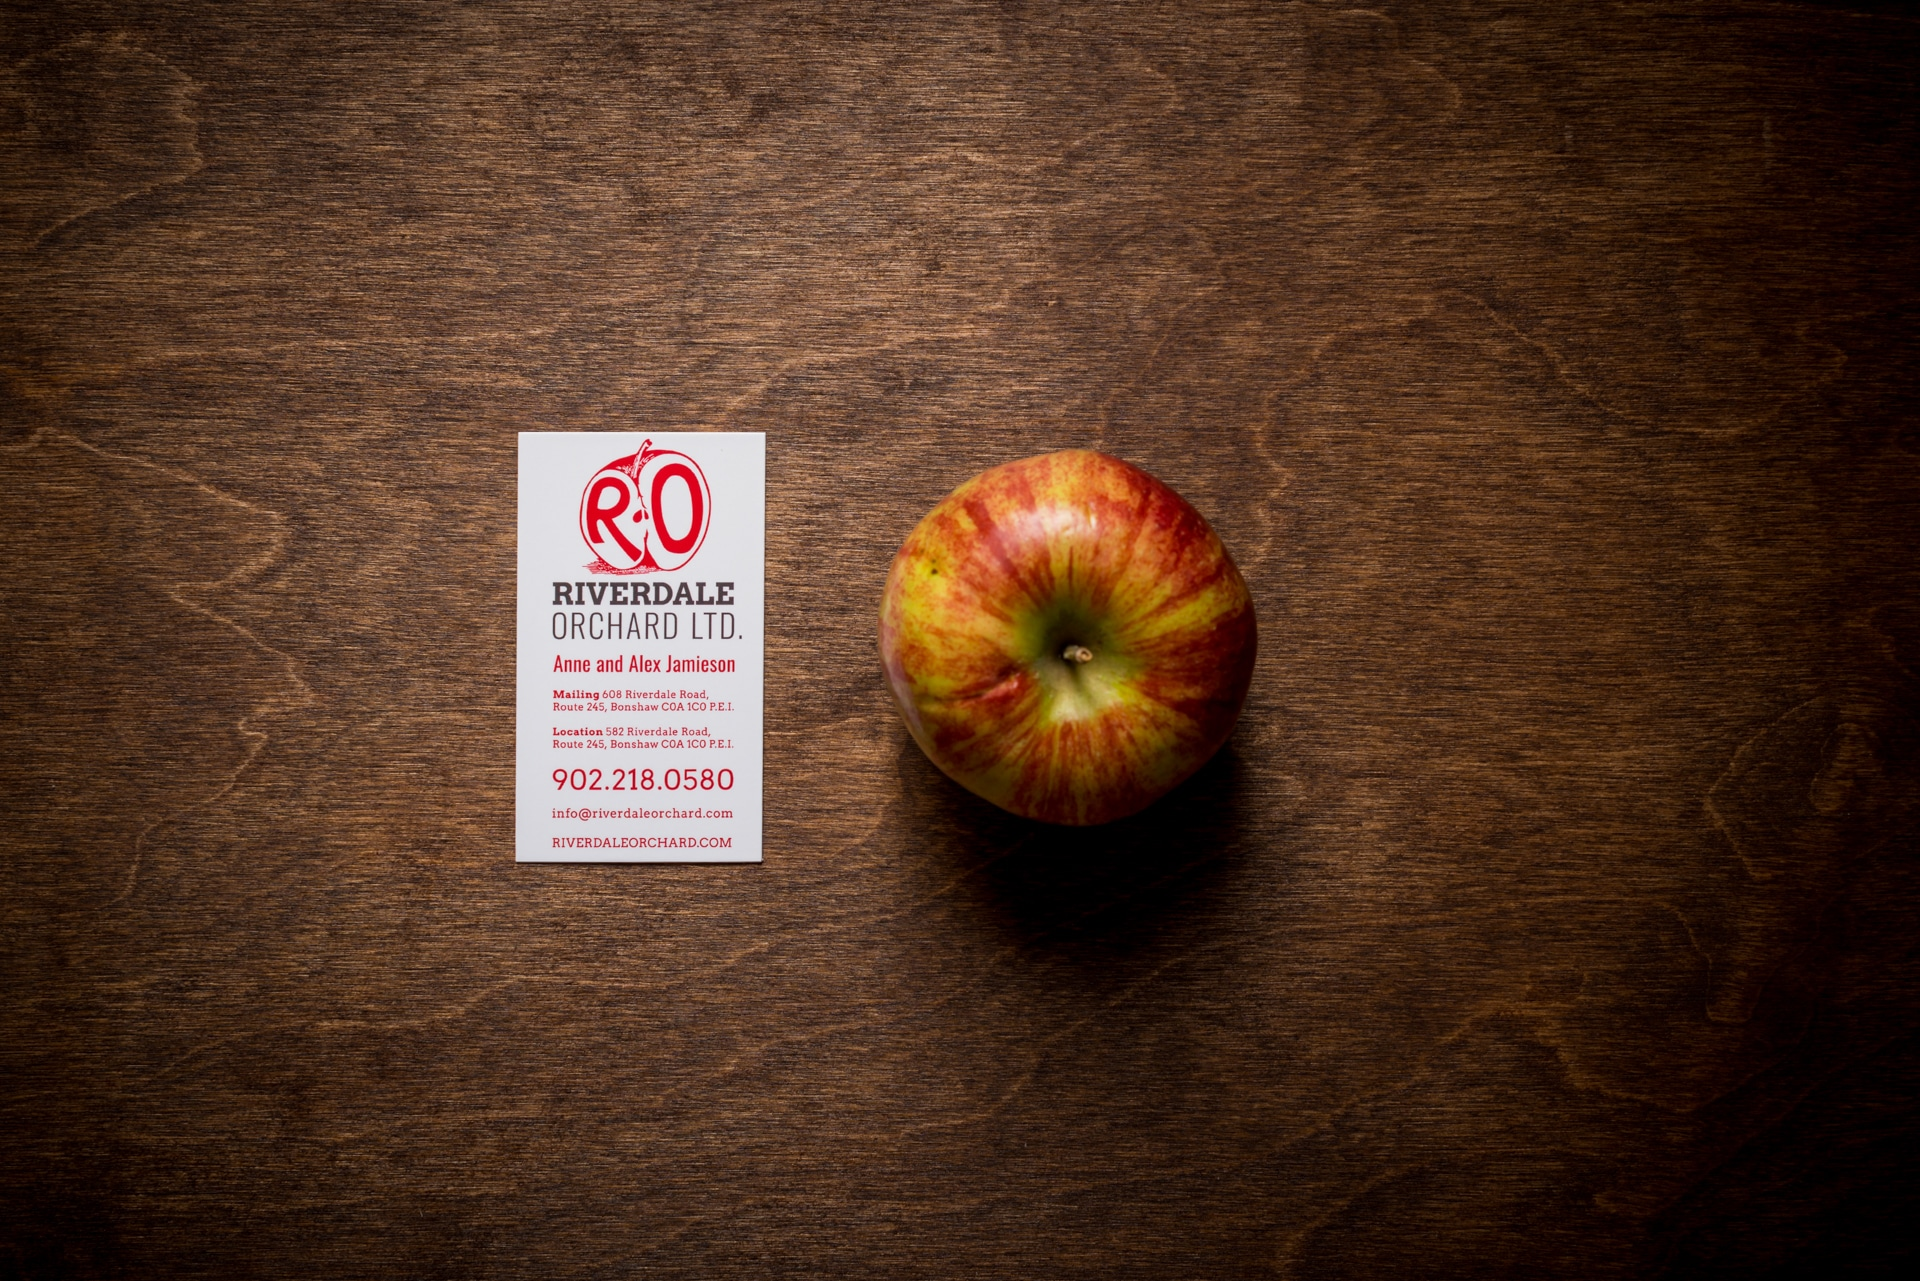 Riverdale Orchard business card and apple